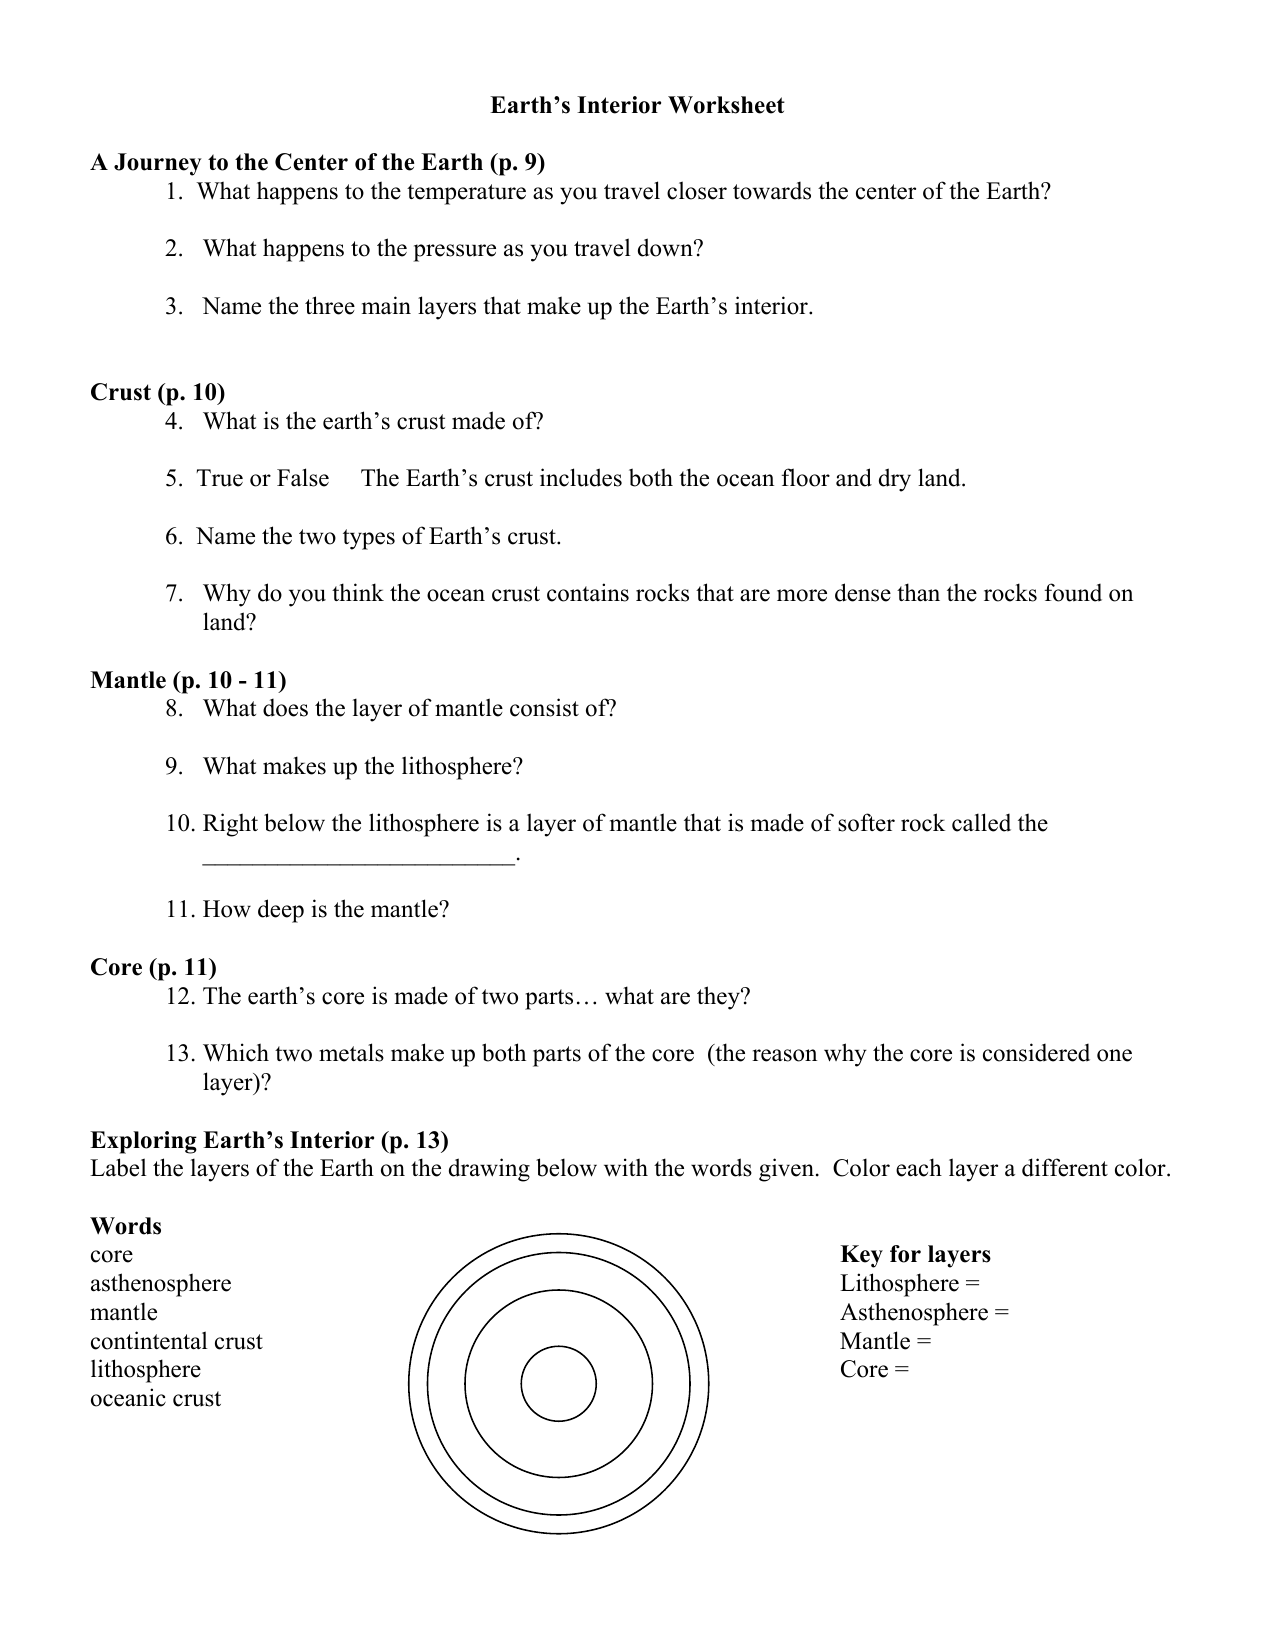 Worksheets Journey To The Center Of The Earth Worksheet earths interior worksheet a journey to the center of earth p 9